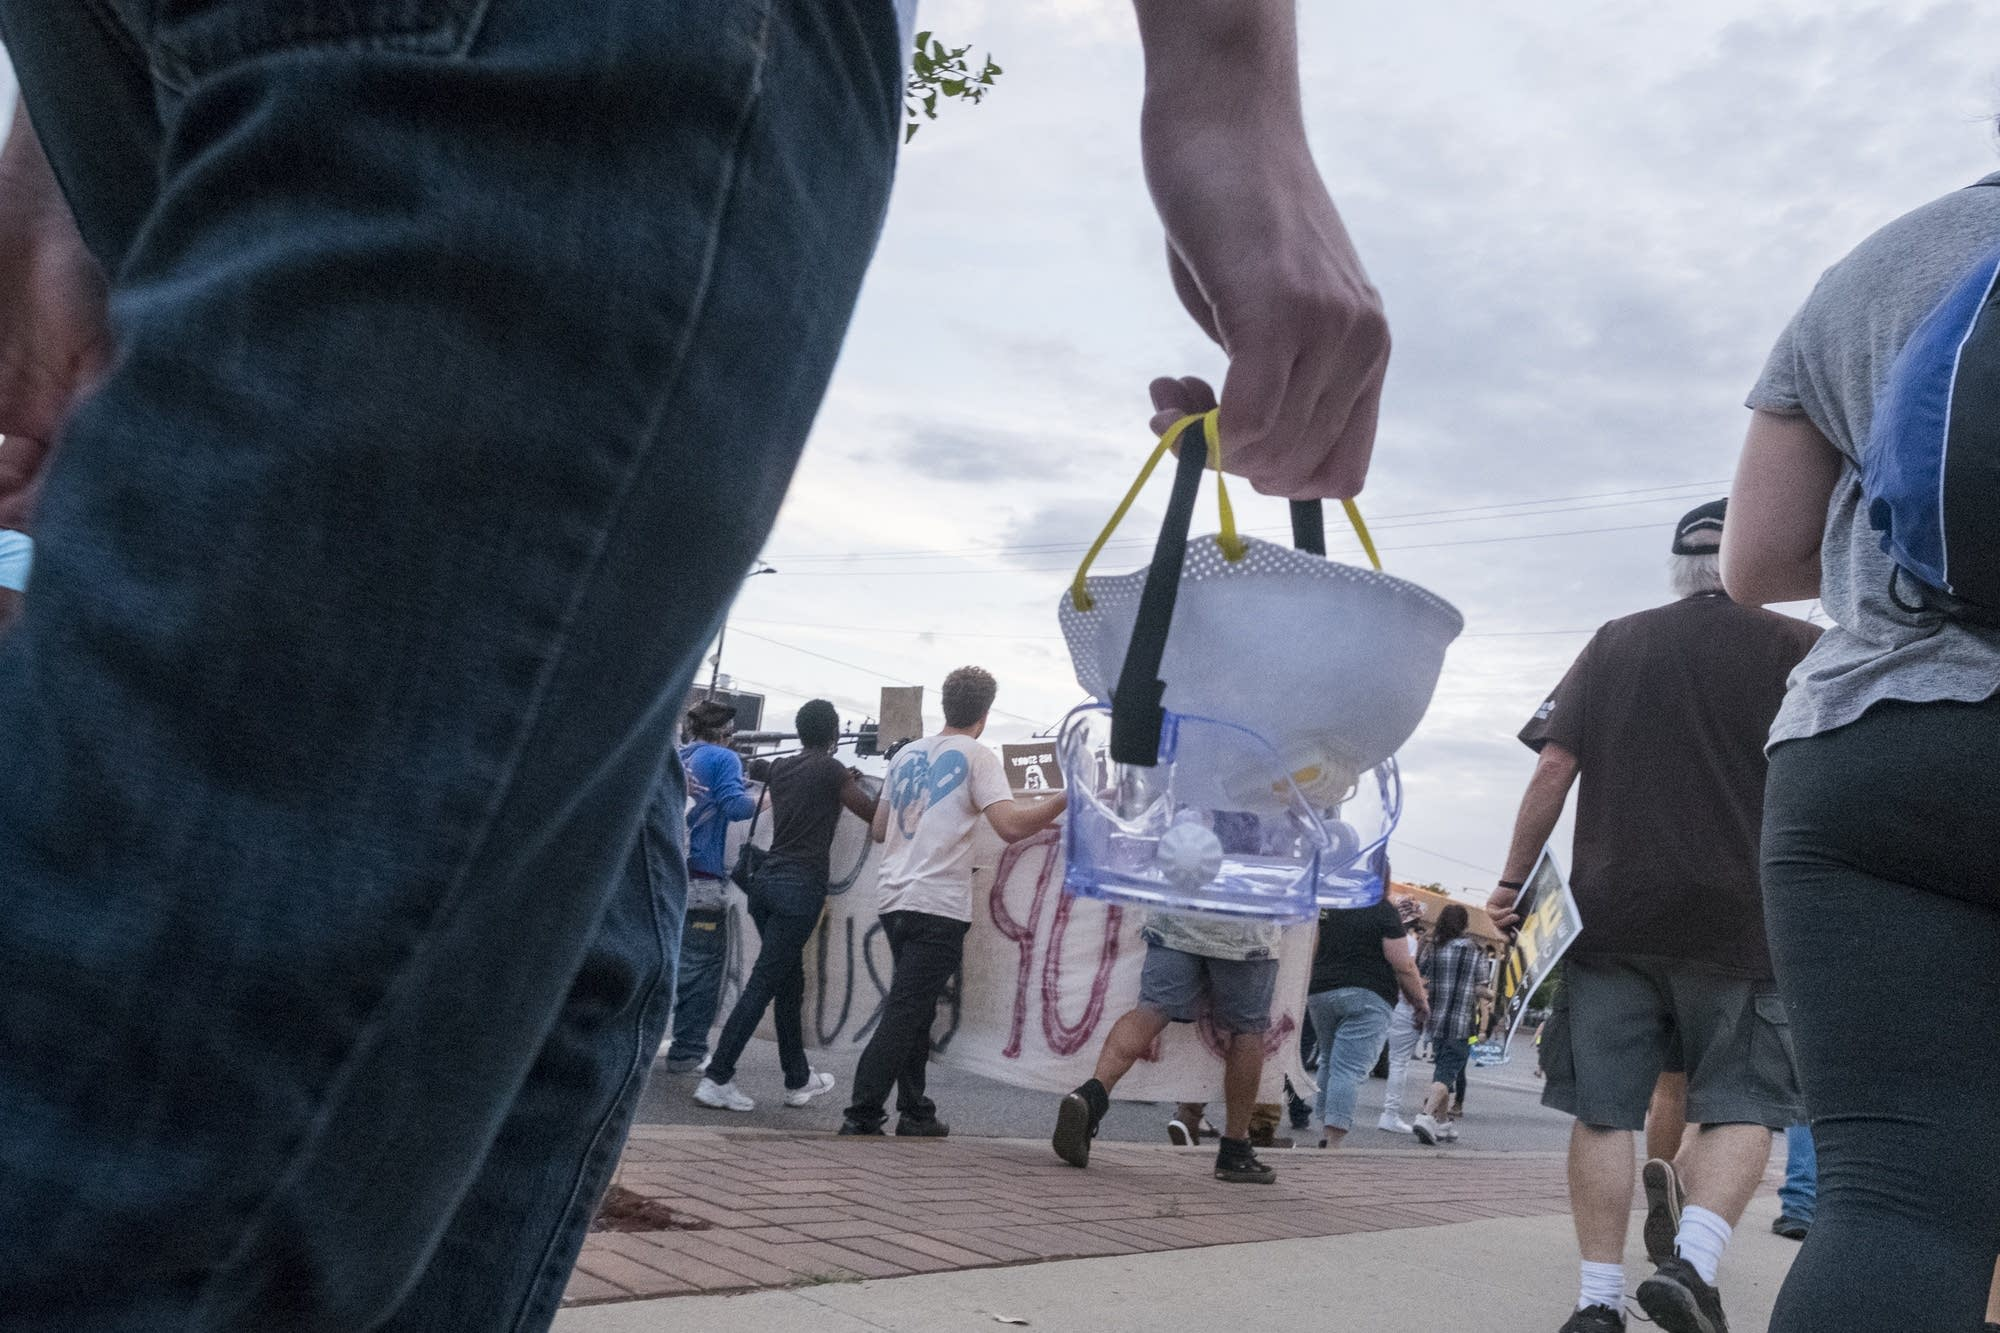 Protesters carry protective gear.